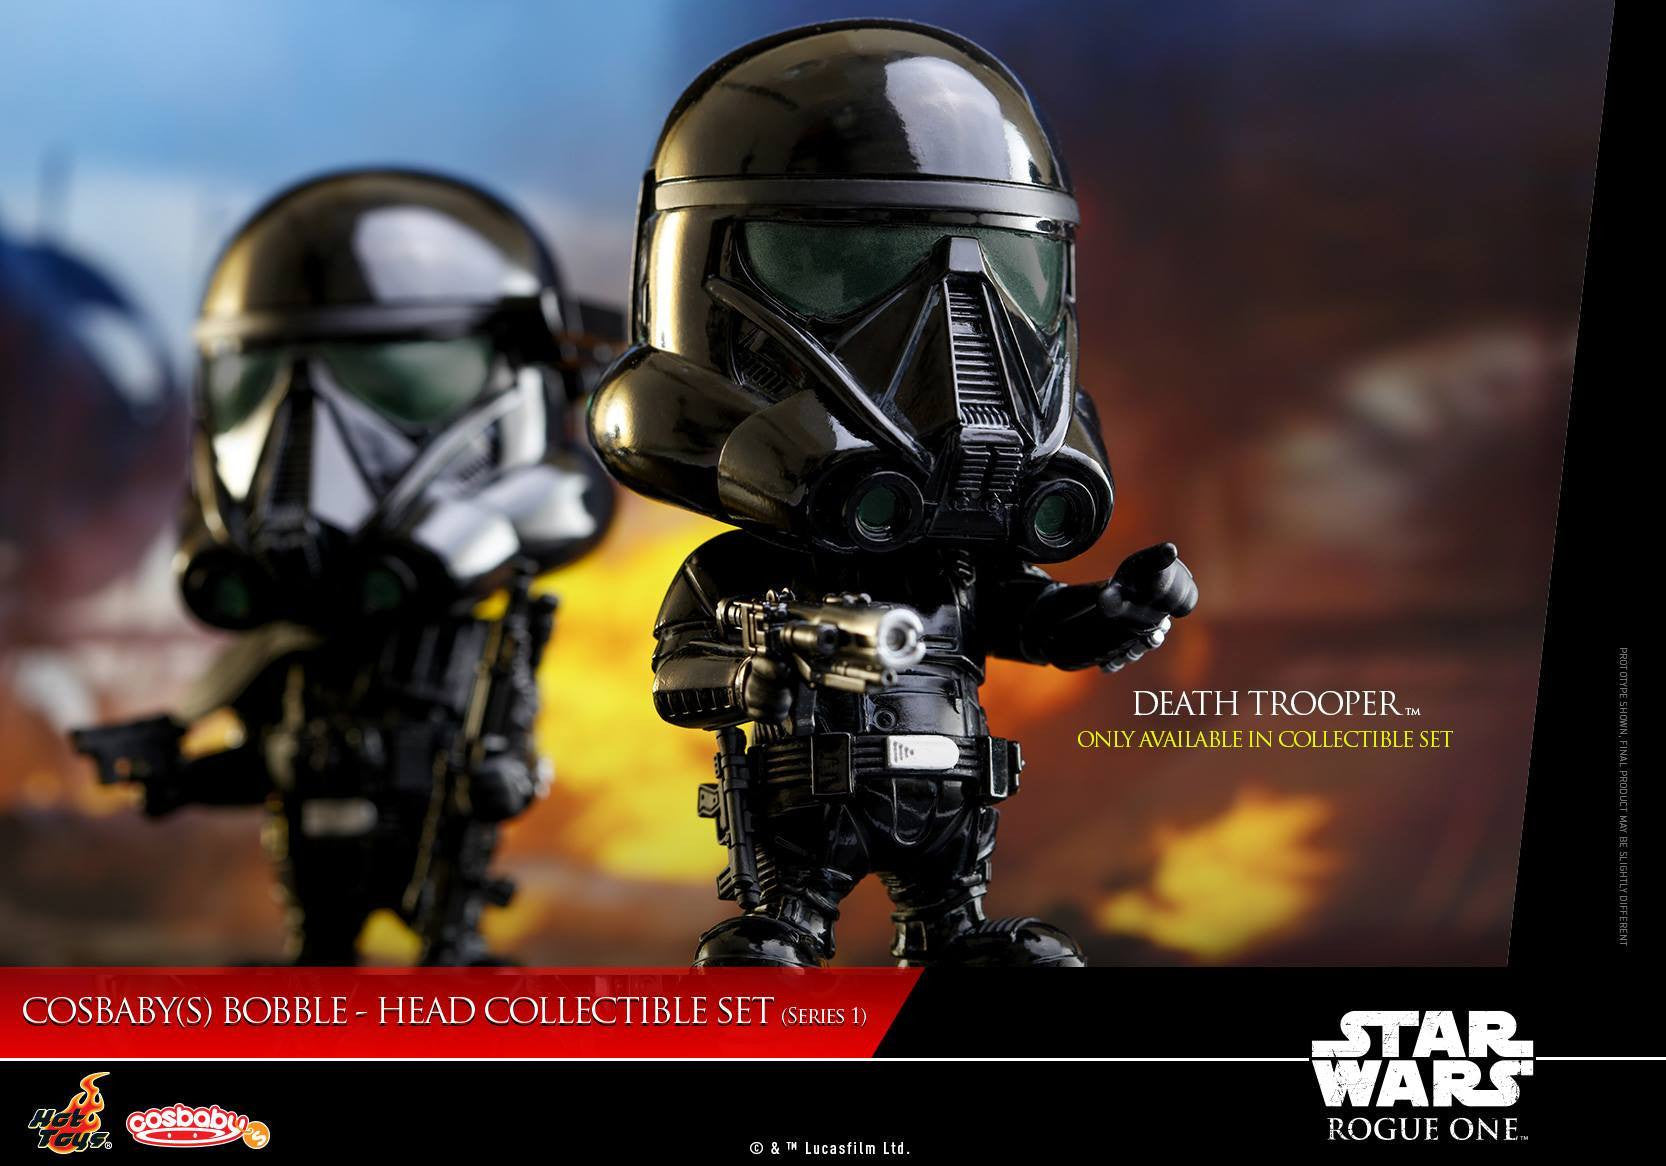 (IN STOCK) Hot Toys - COSB335 - Rogue One: A Star Wars Story - Cosbaby Bobble-Head (Series 1) Set of 6 - Marvelous Toys - 5